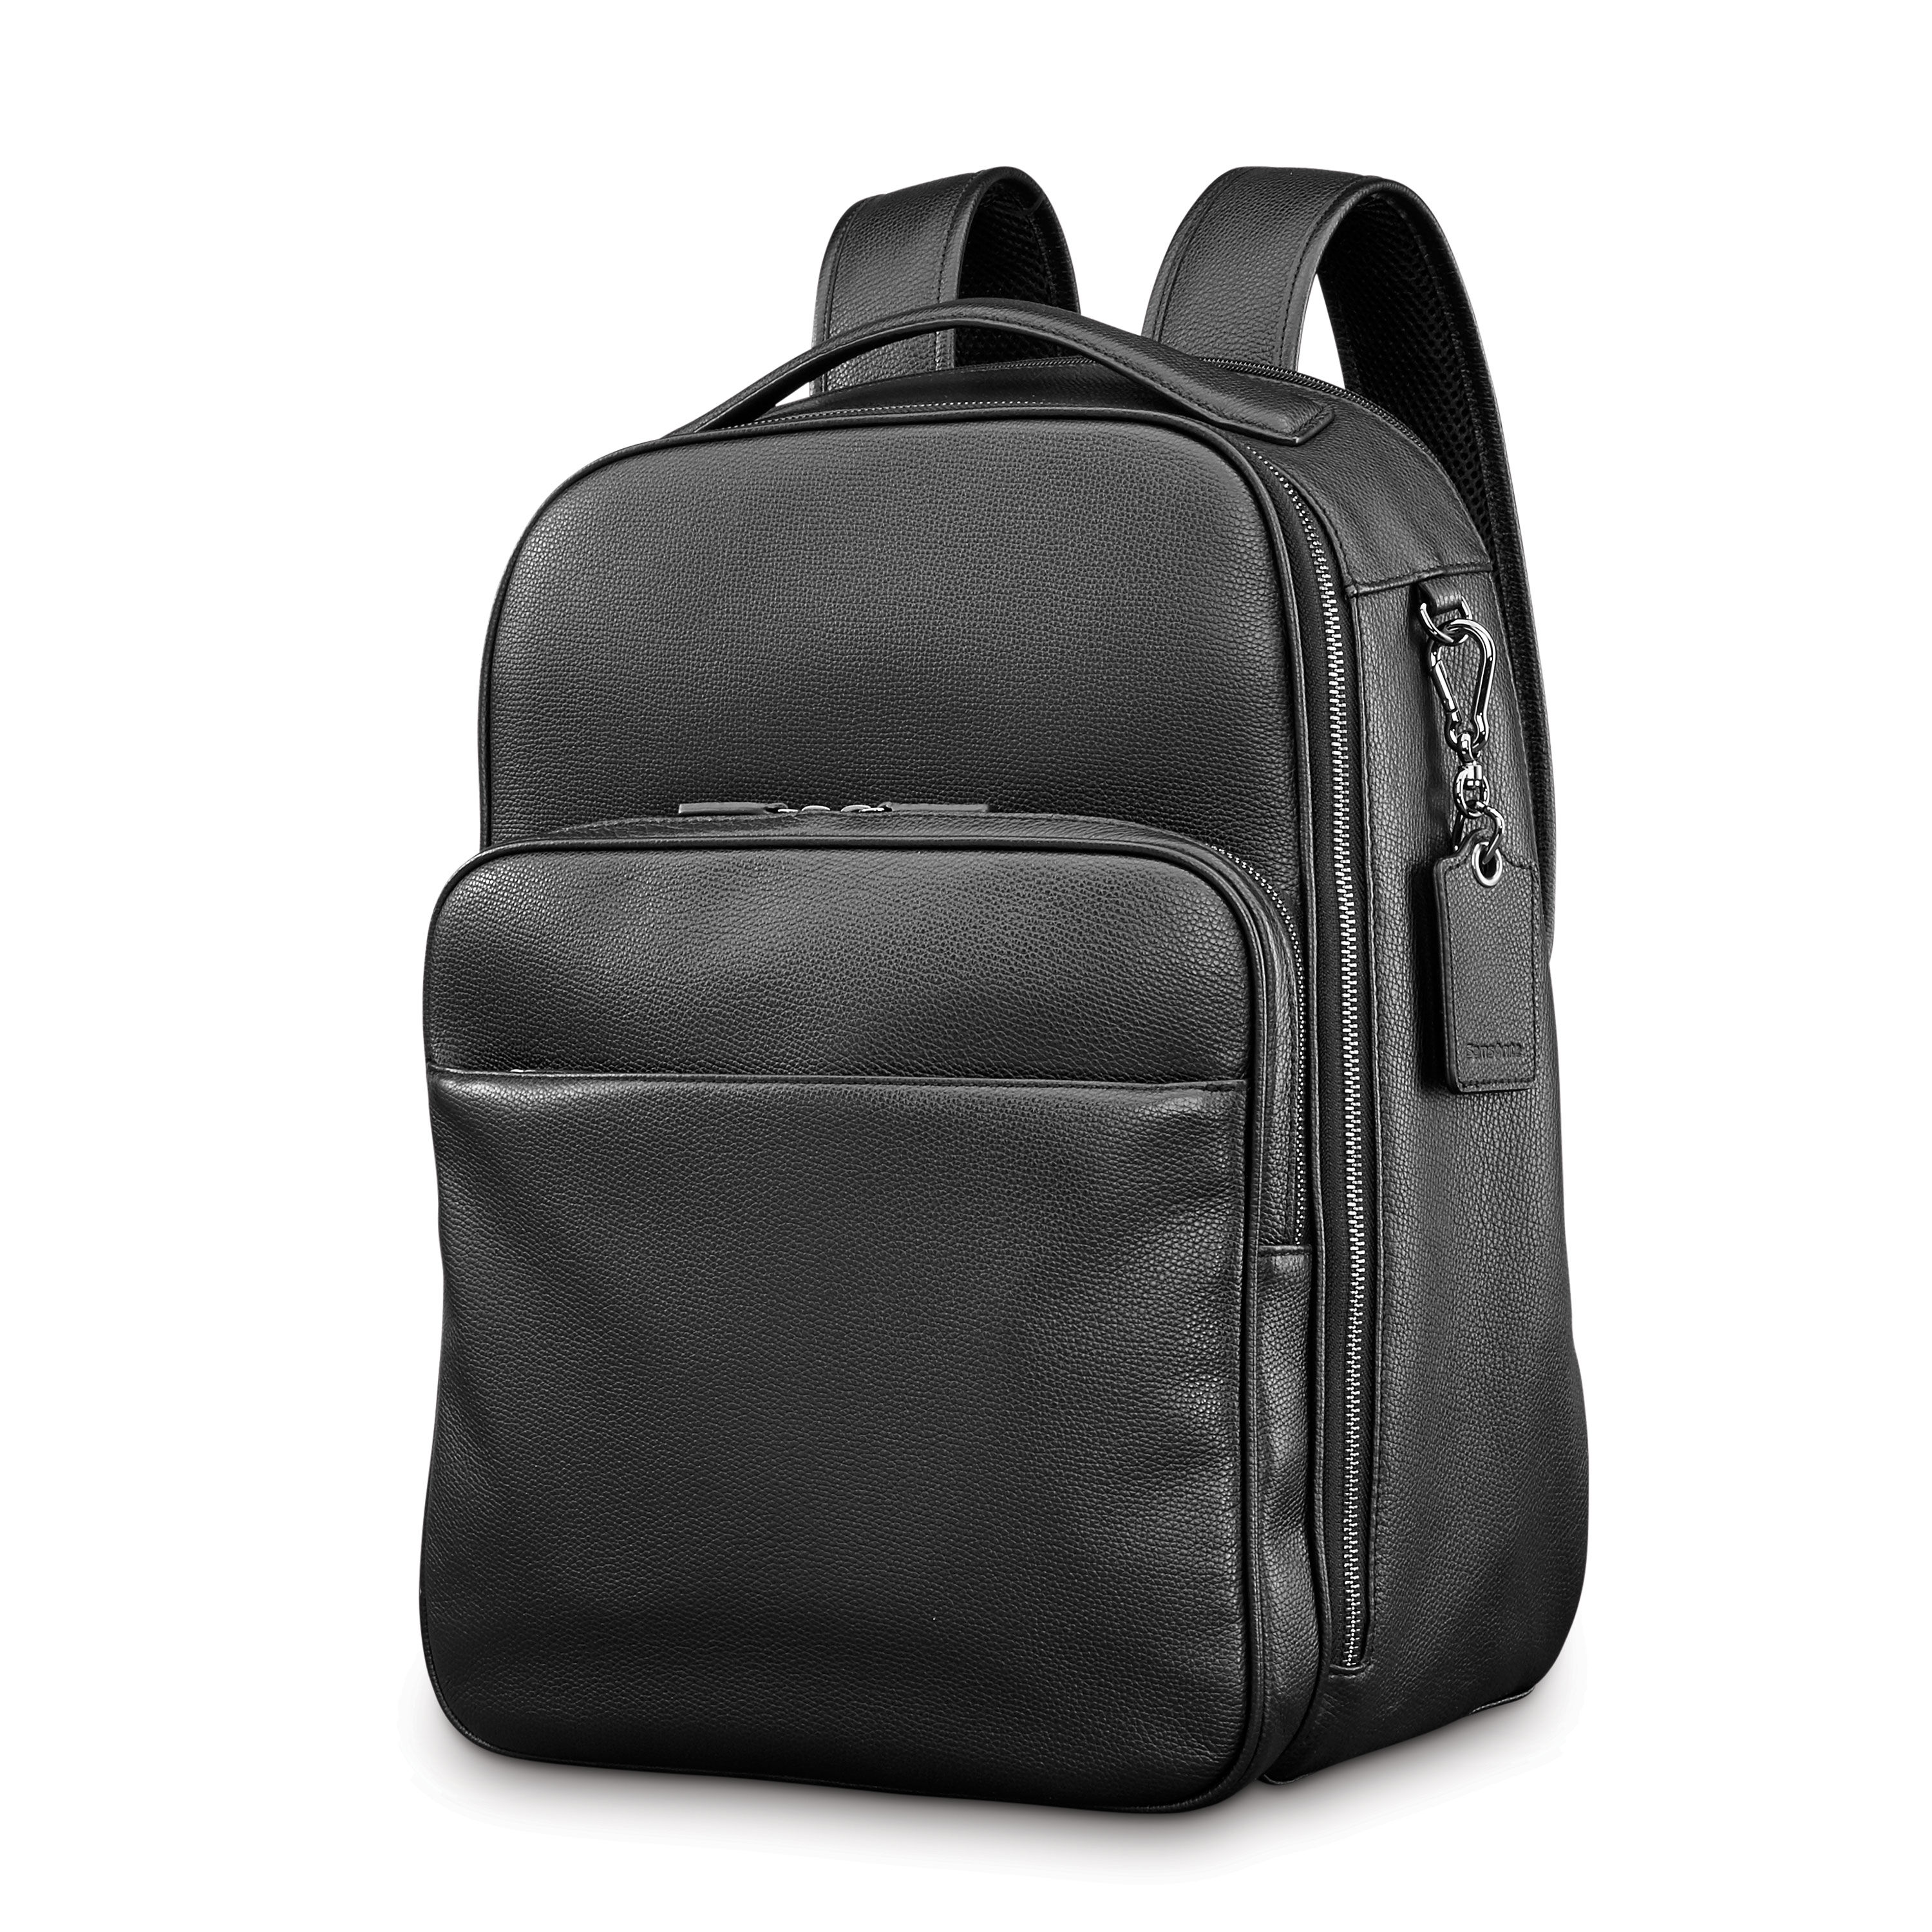 Luggage & Bags High Quality Seventeen 17 Luminous Backpack Rucksacks Student School Travel Bags Daypack Laptop Bag